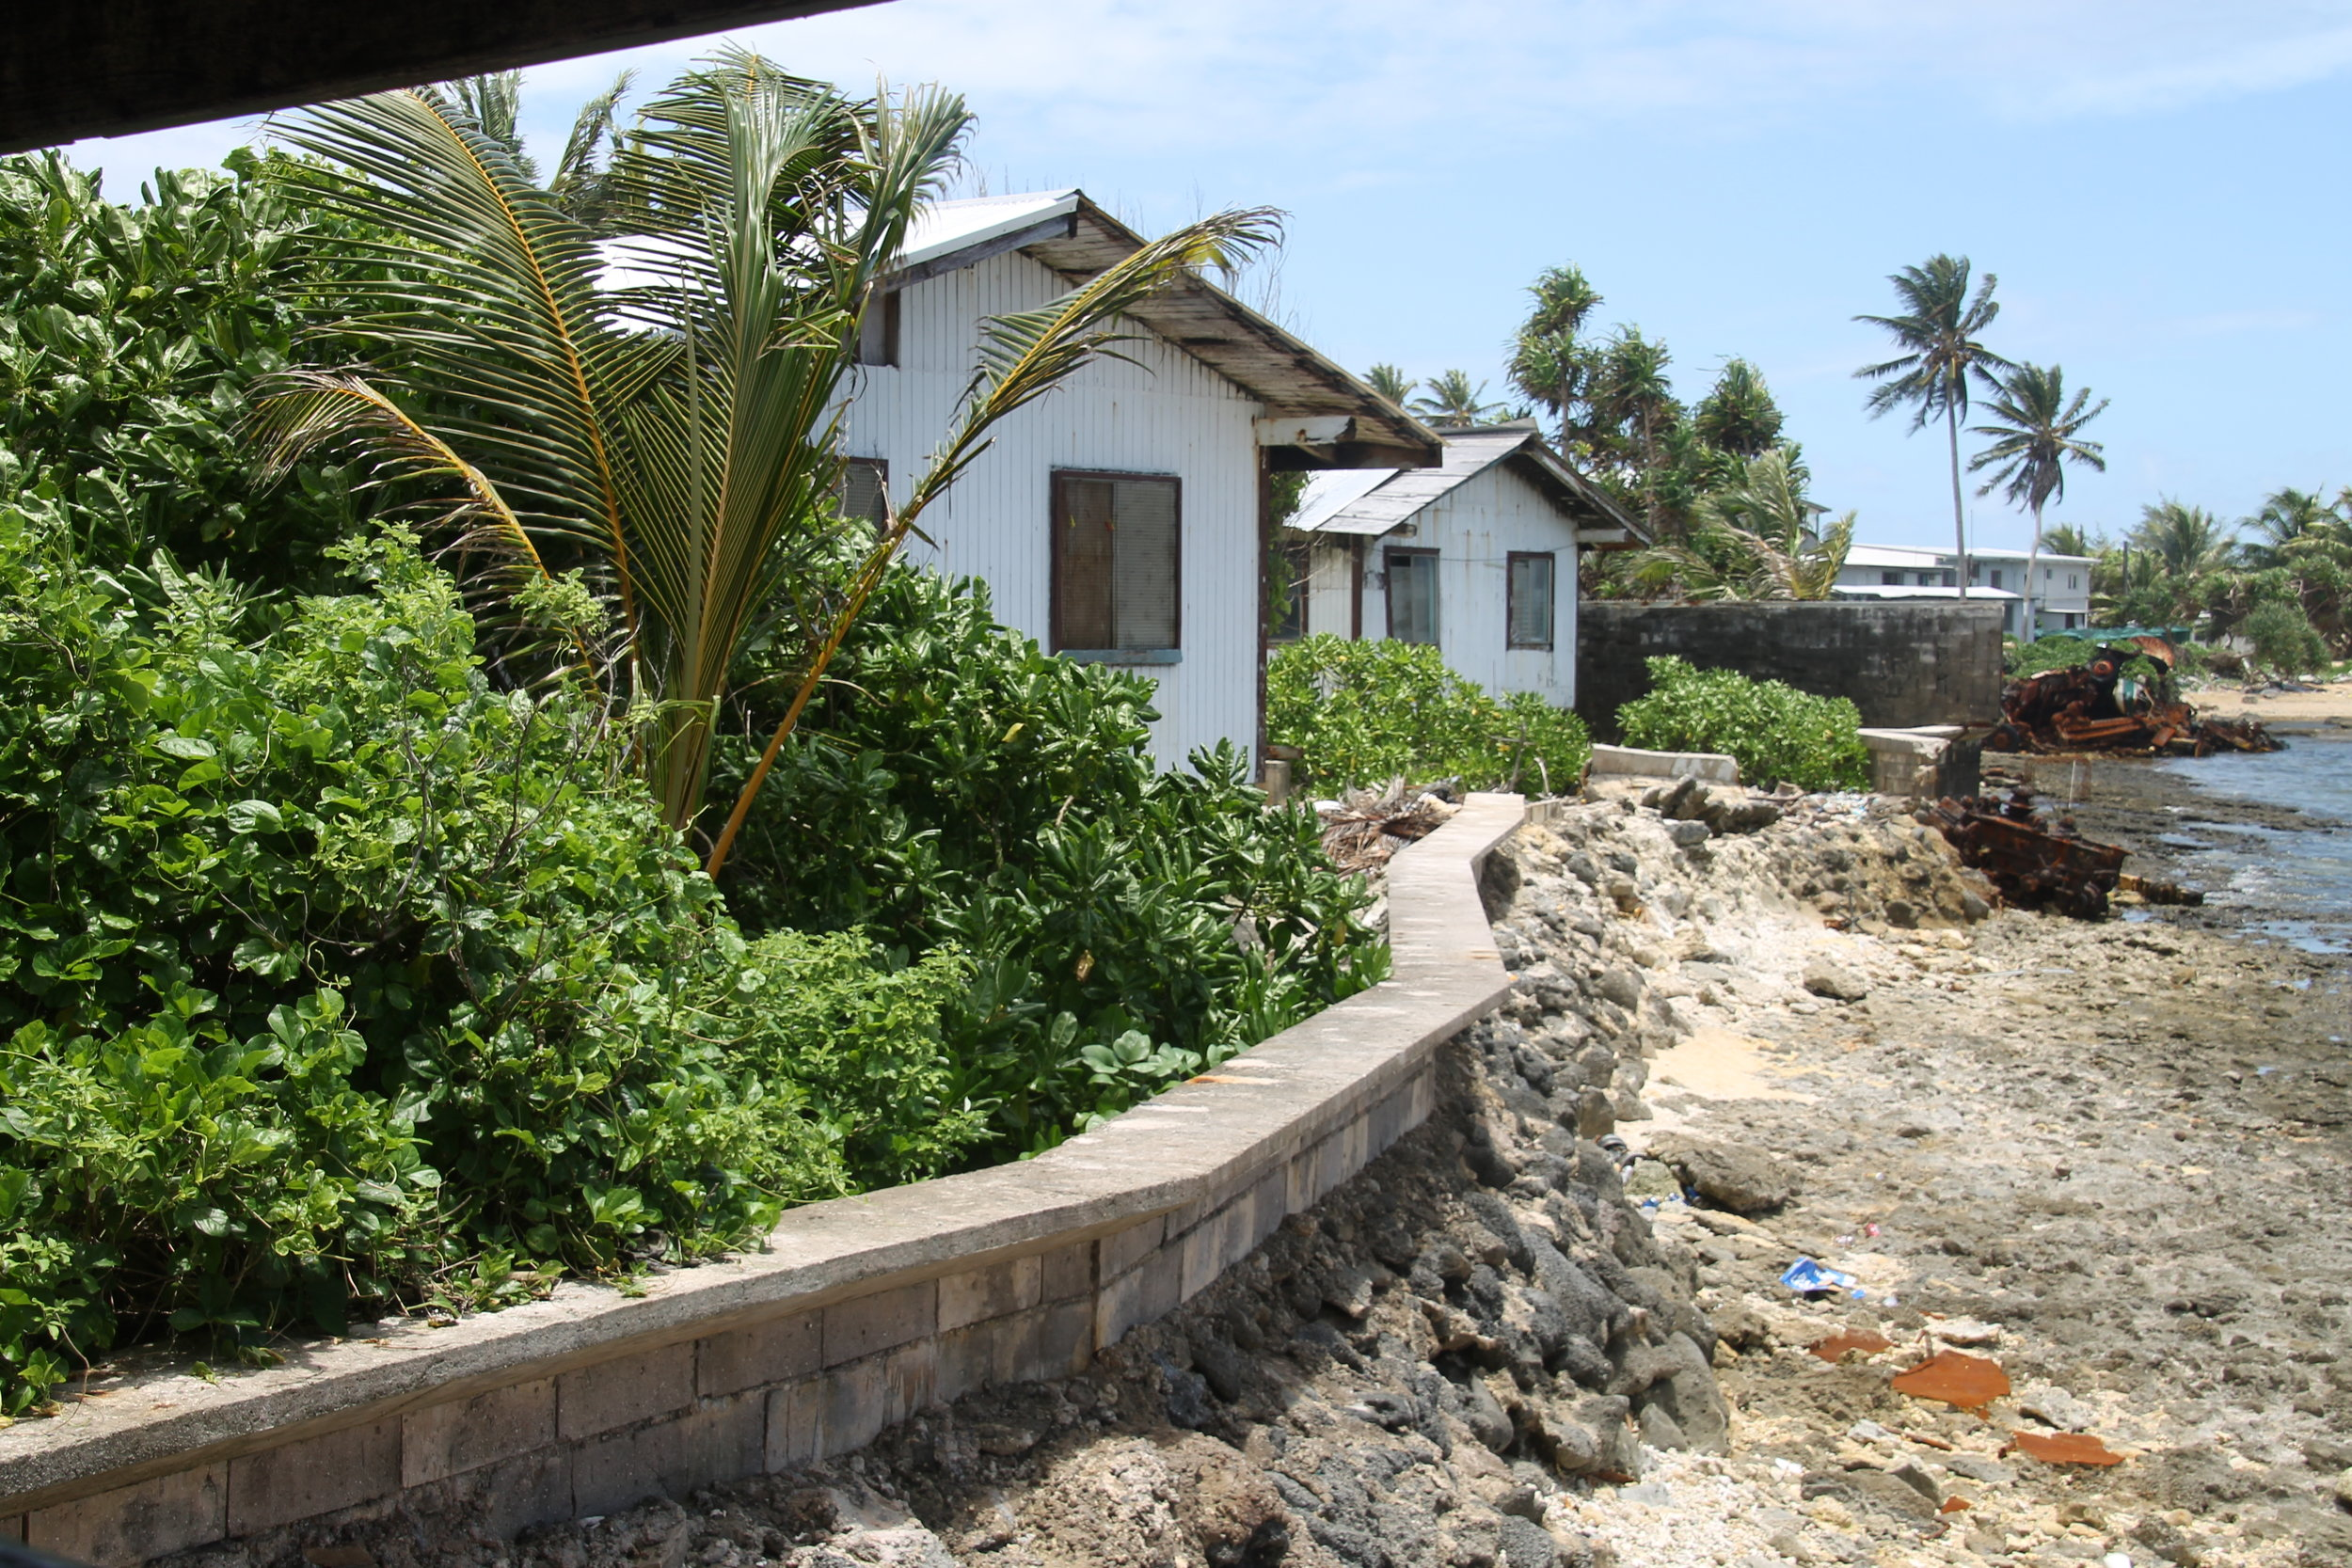 Climate-Induced Migration & the Compact of Free Association - Limitations and Opportunities for the Citizens of the Republic of the Marshall Islands